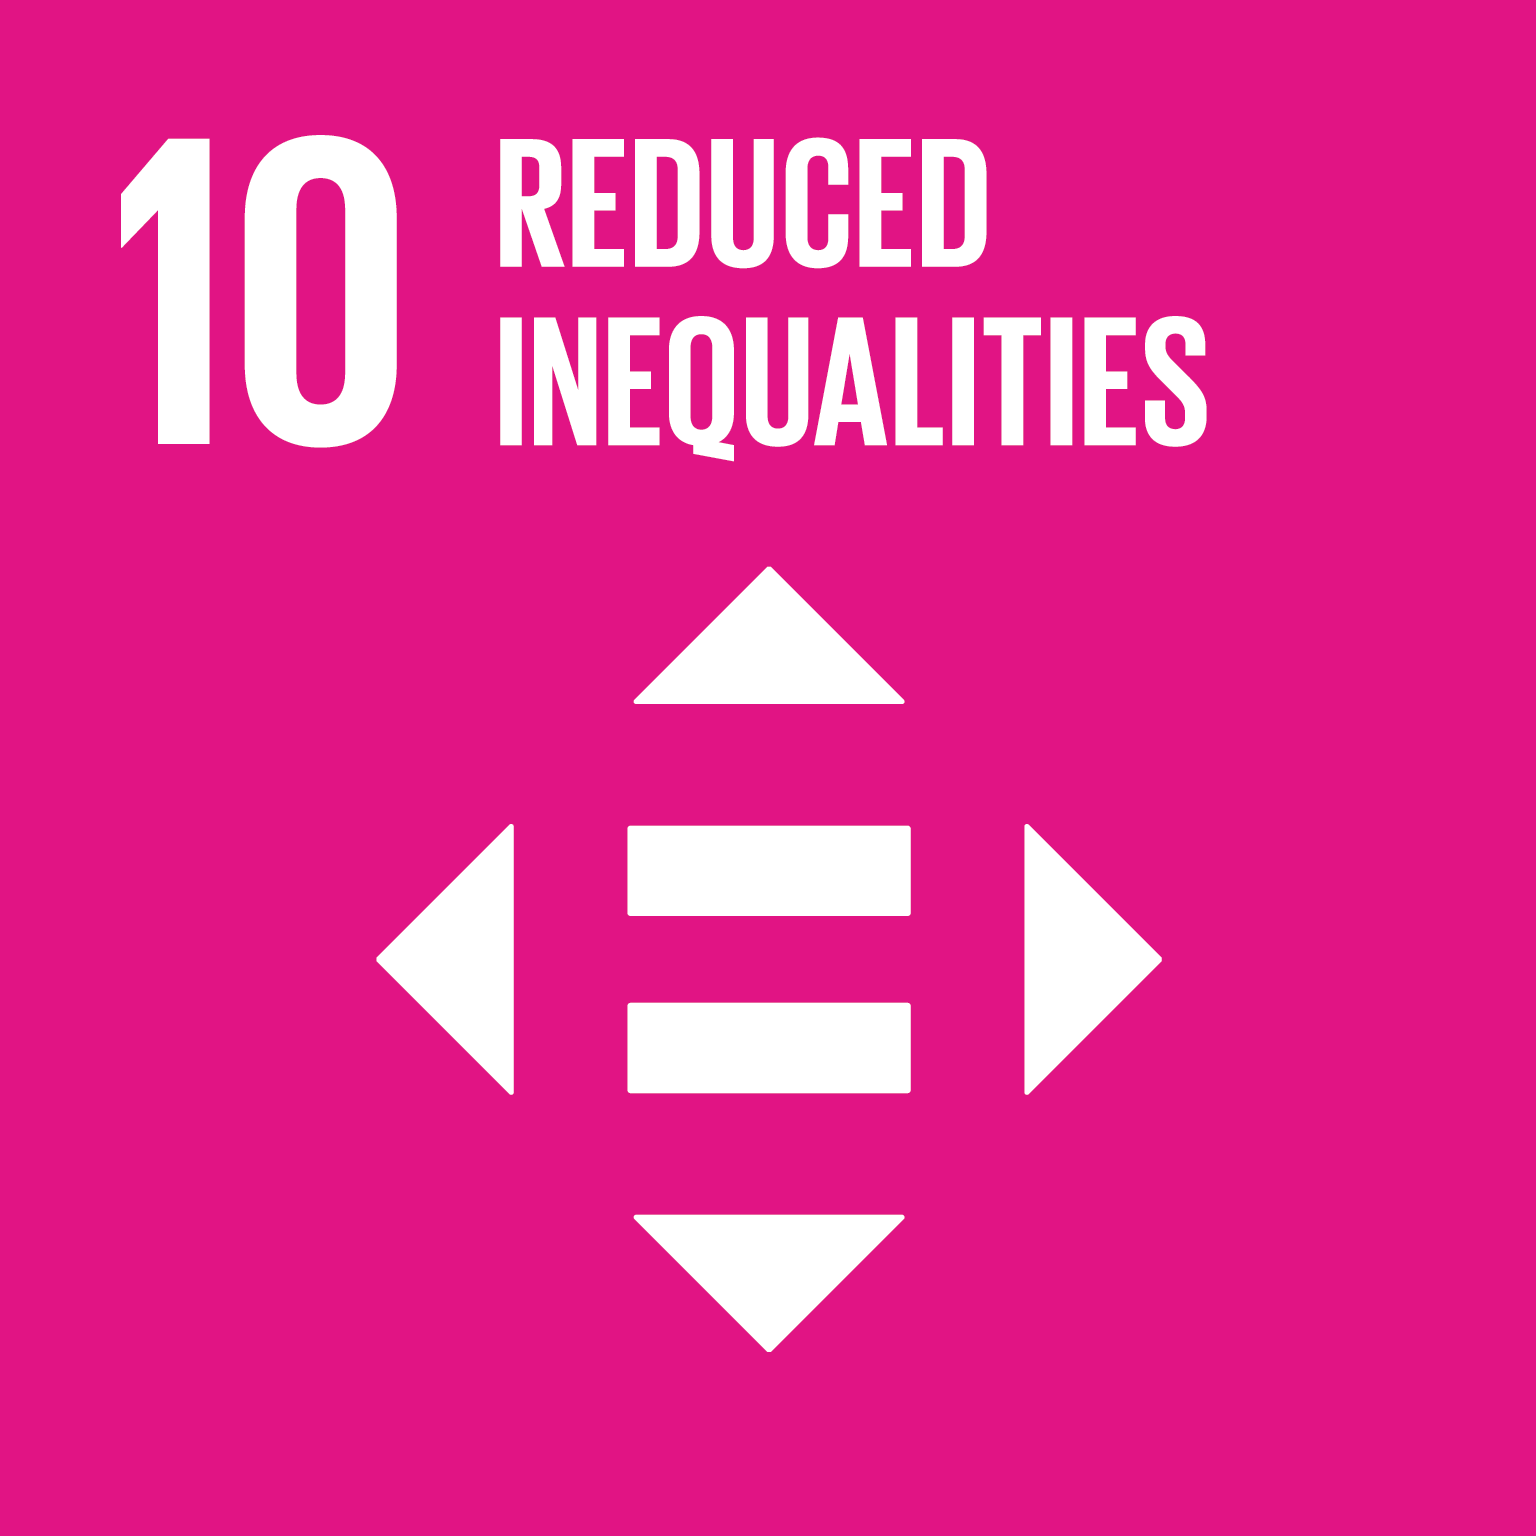 Reduced inequalities logo.